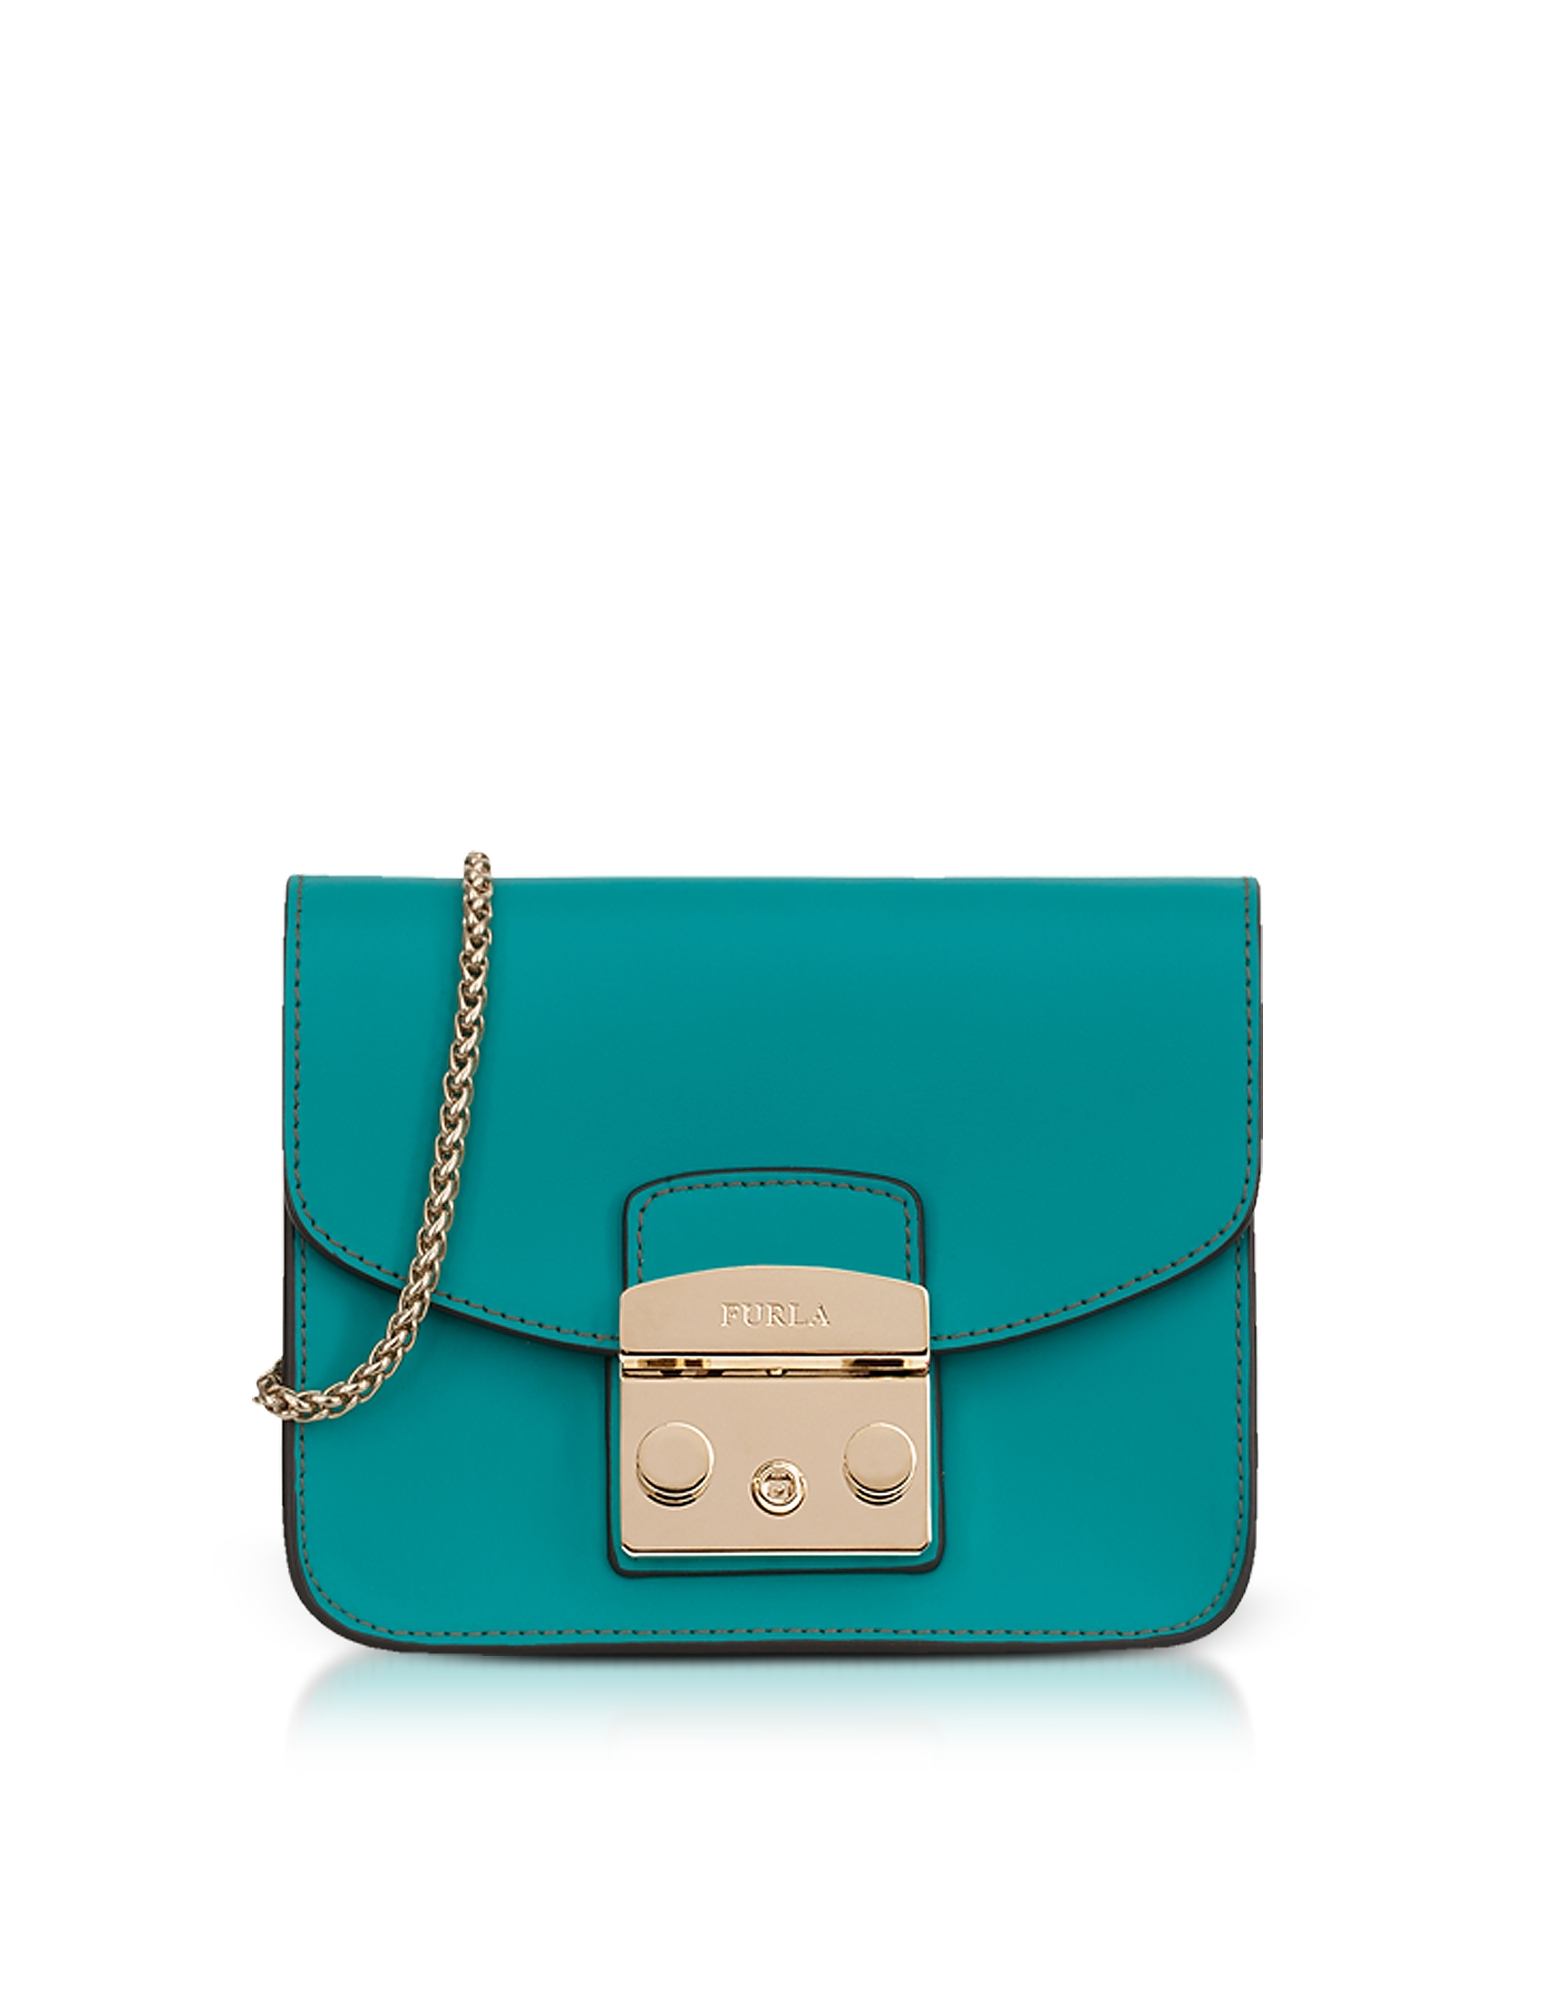 Furla Handbags, Giada Green Smooth Leather Metropolis Mini Crossbody Bag